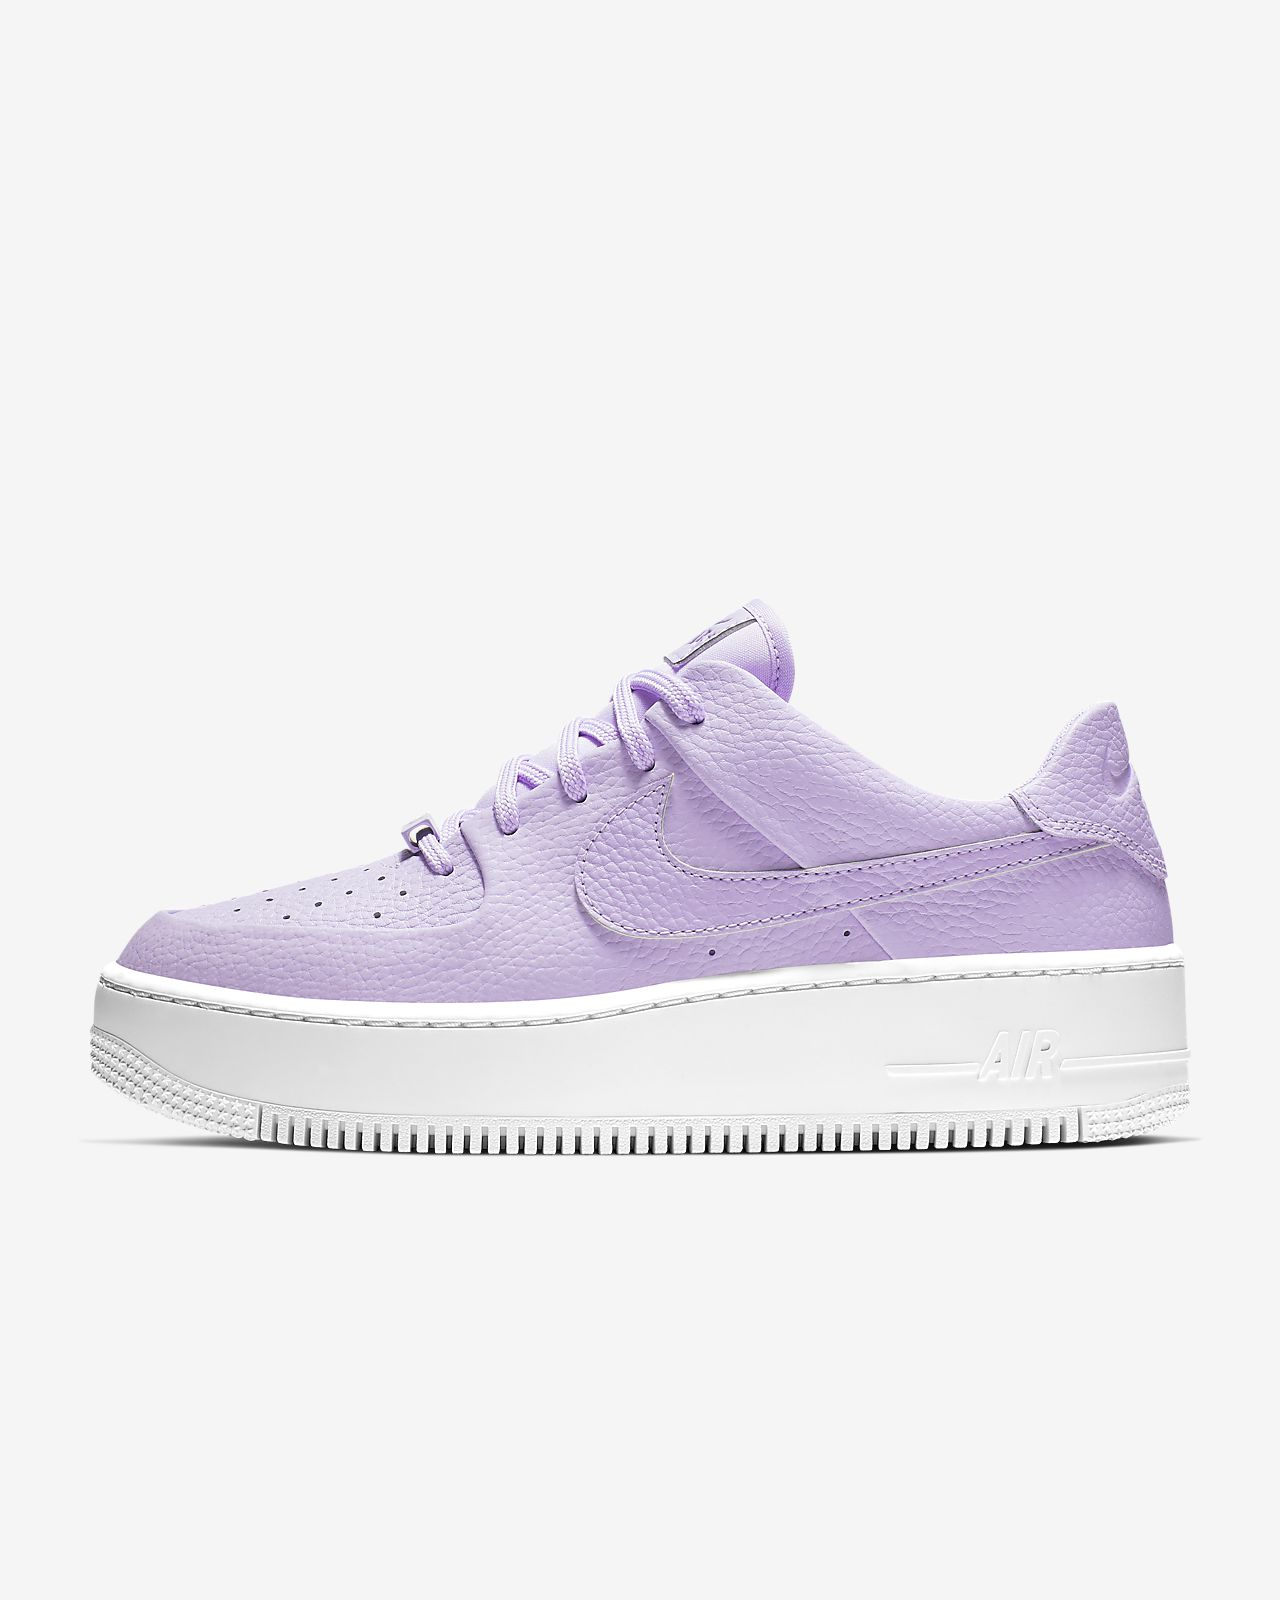 reputable site 60d75 733e5 Skon Nike Air Force 1 Sage Low för kvinnor. Nike.com SE